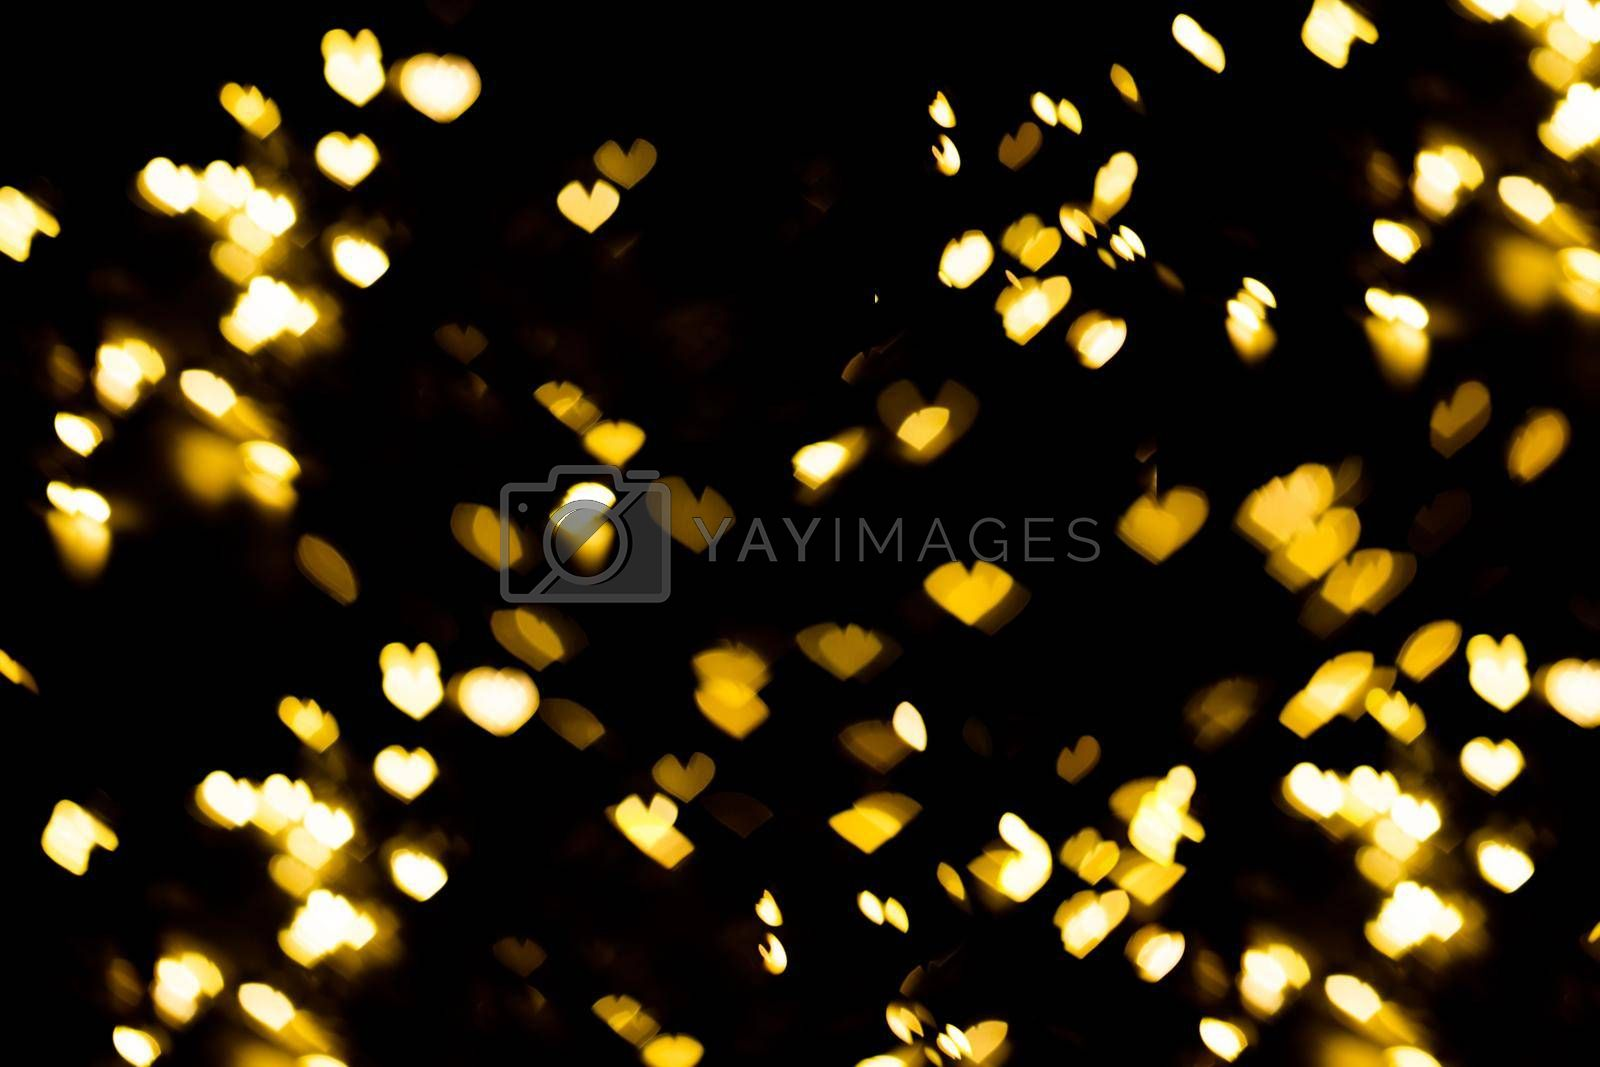 Golden shining bokeh on black background. Decoration for valentine's day or christmas background.Blurred and soft focus.